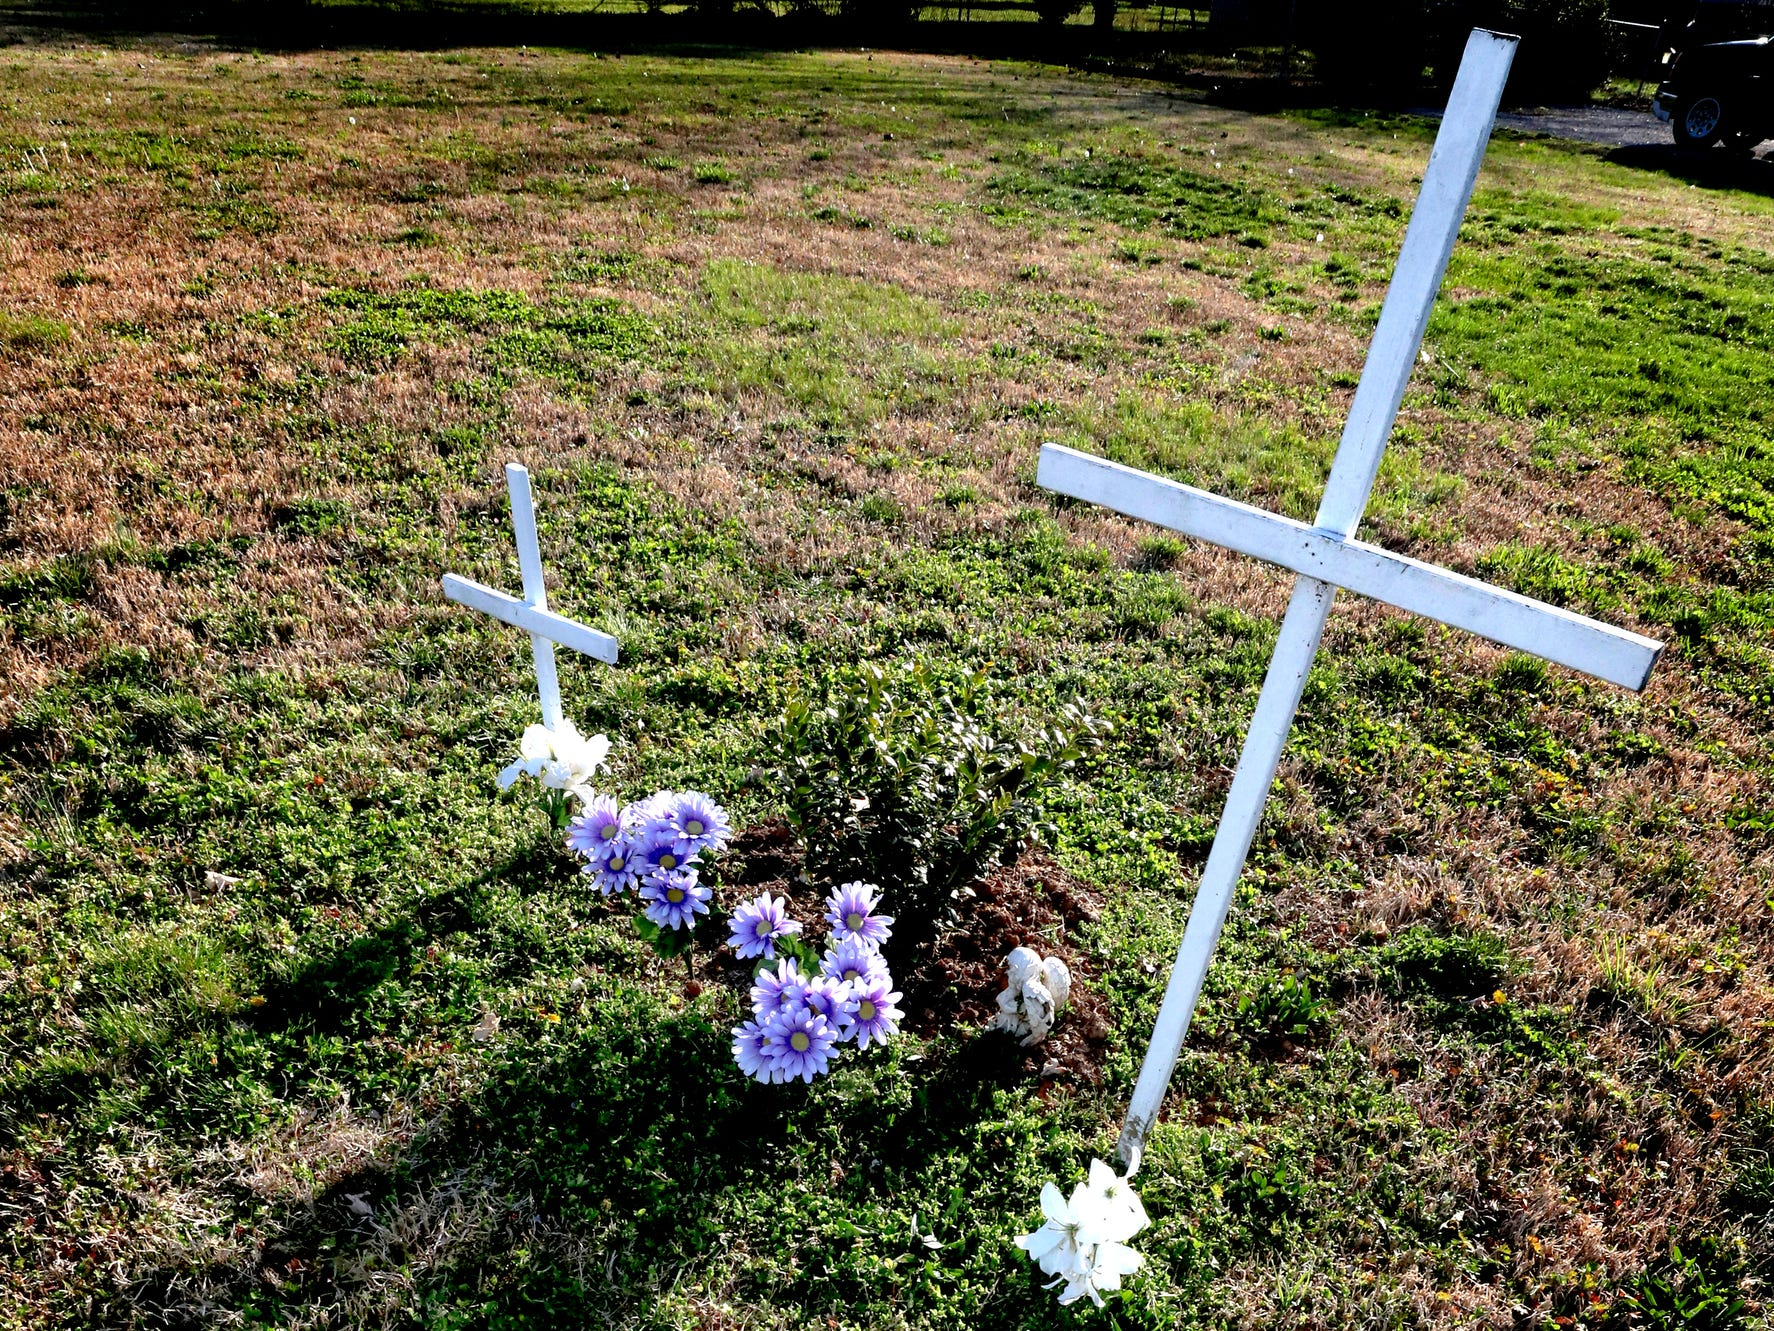 Two wooden crosses are on a plot of land at the corner of Sulphur Springs Road and Haynes Drive on Wednesday March 27, 2019, to remember 9 week-old Olivia Bryant and her mom Kori Bryant who, died due to the 2009 Good Friday tornado. The site marks the location of the house that was destroyed ten years ago where the two died in 2009.